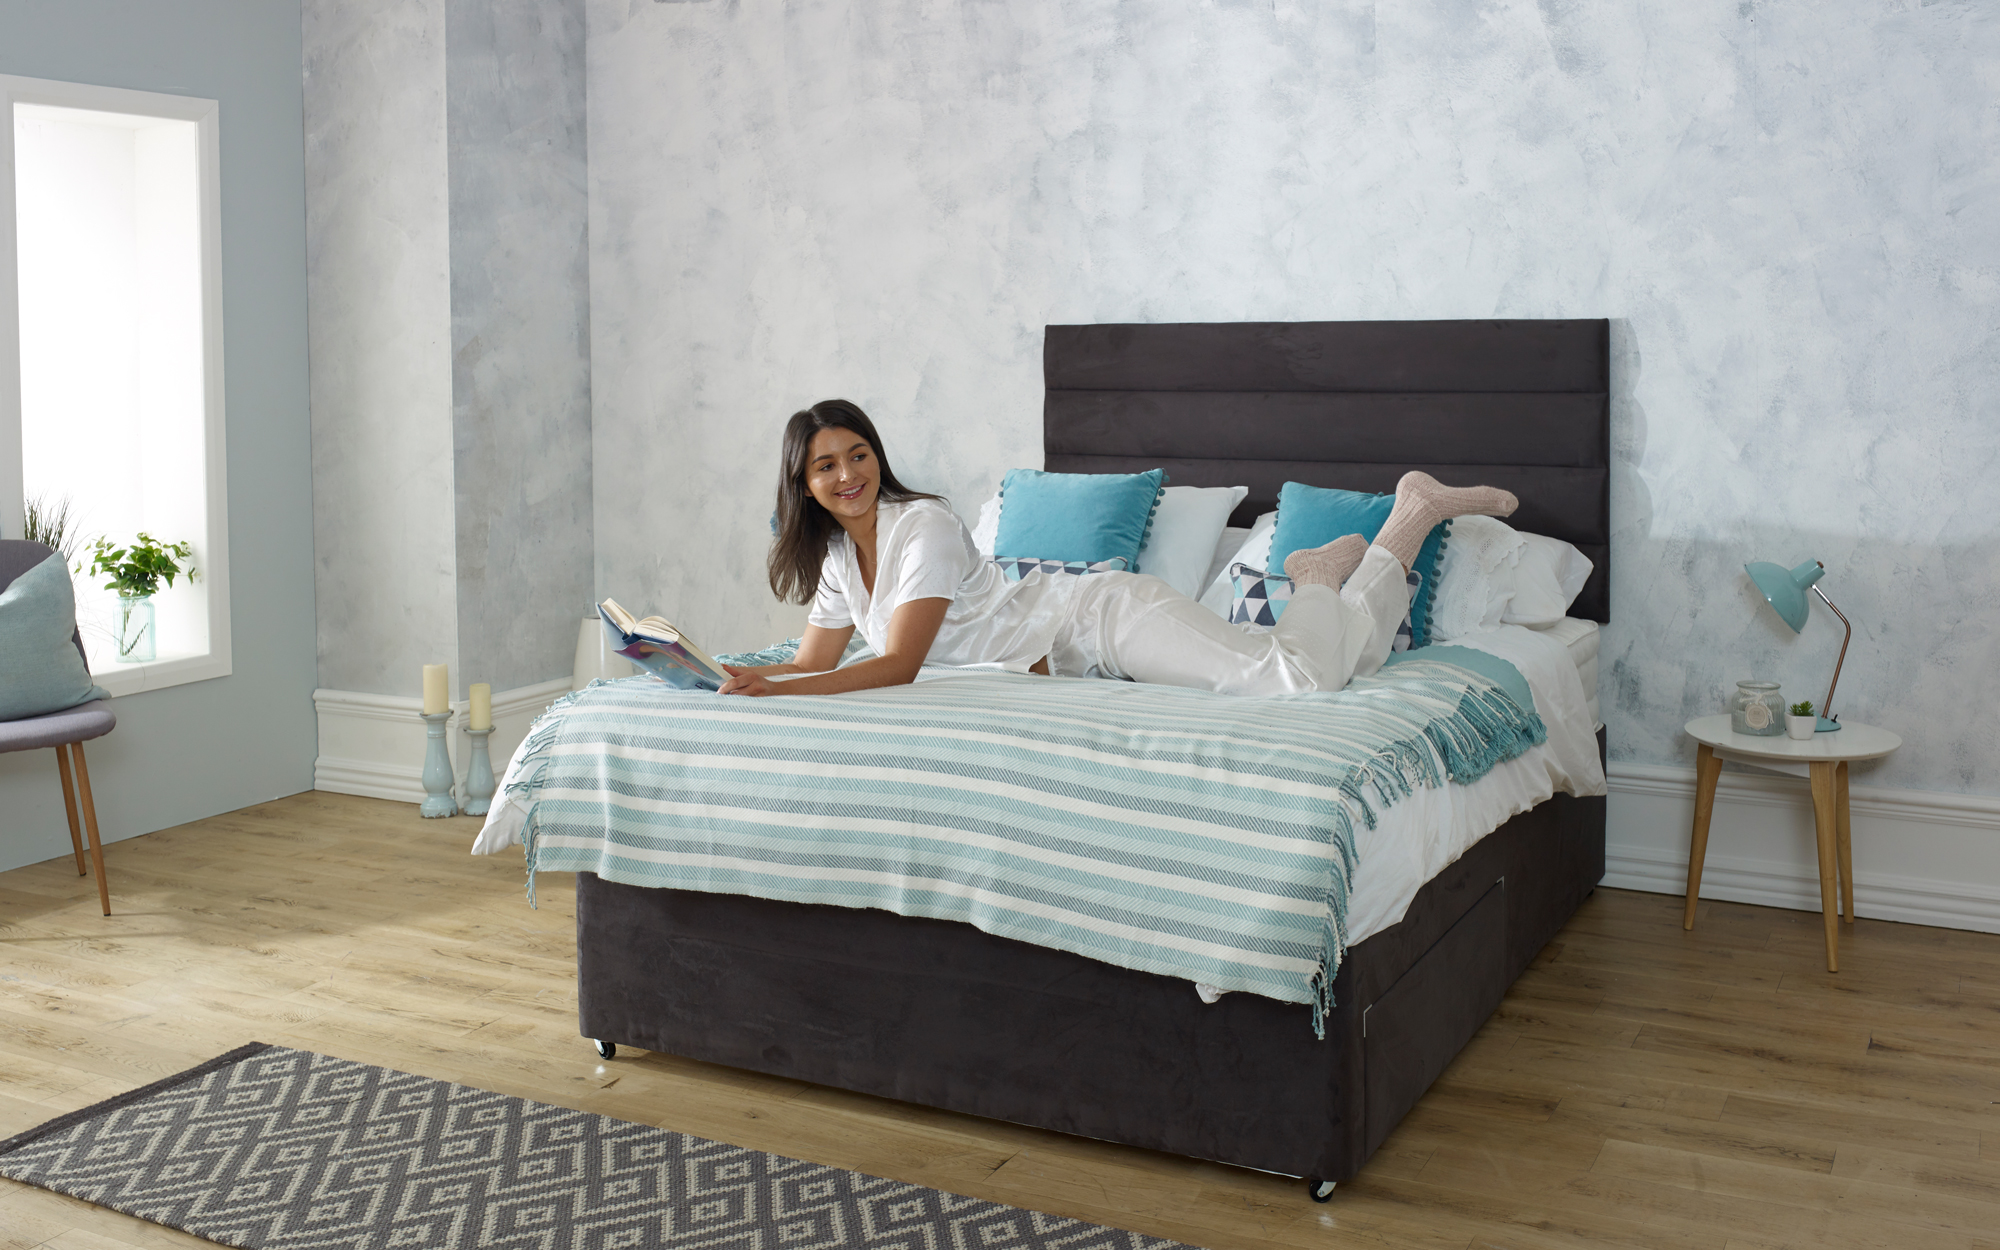 Top Ten Mattresses: 2020